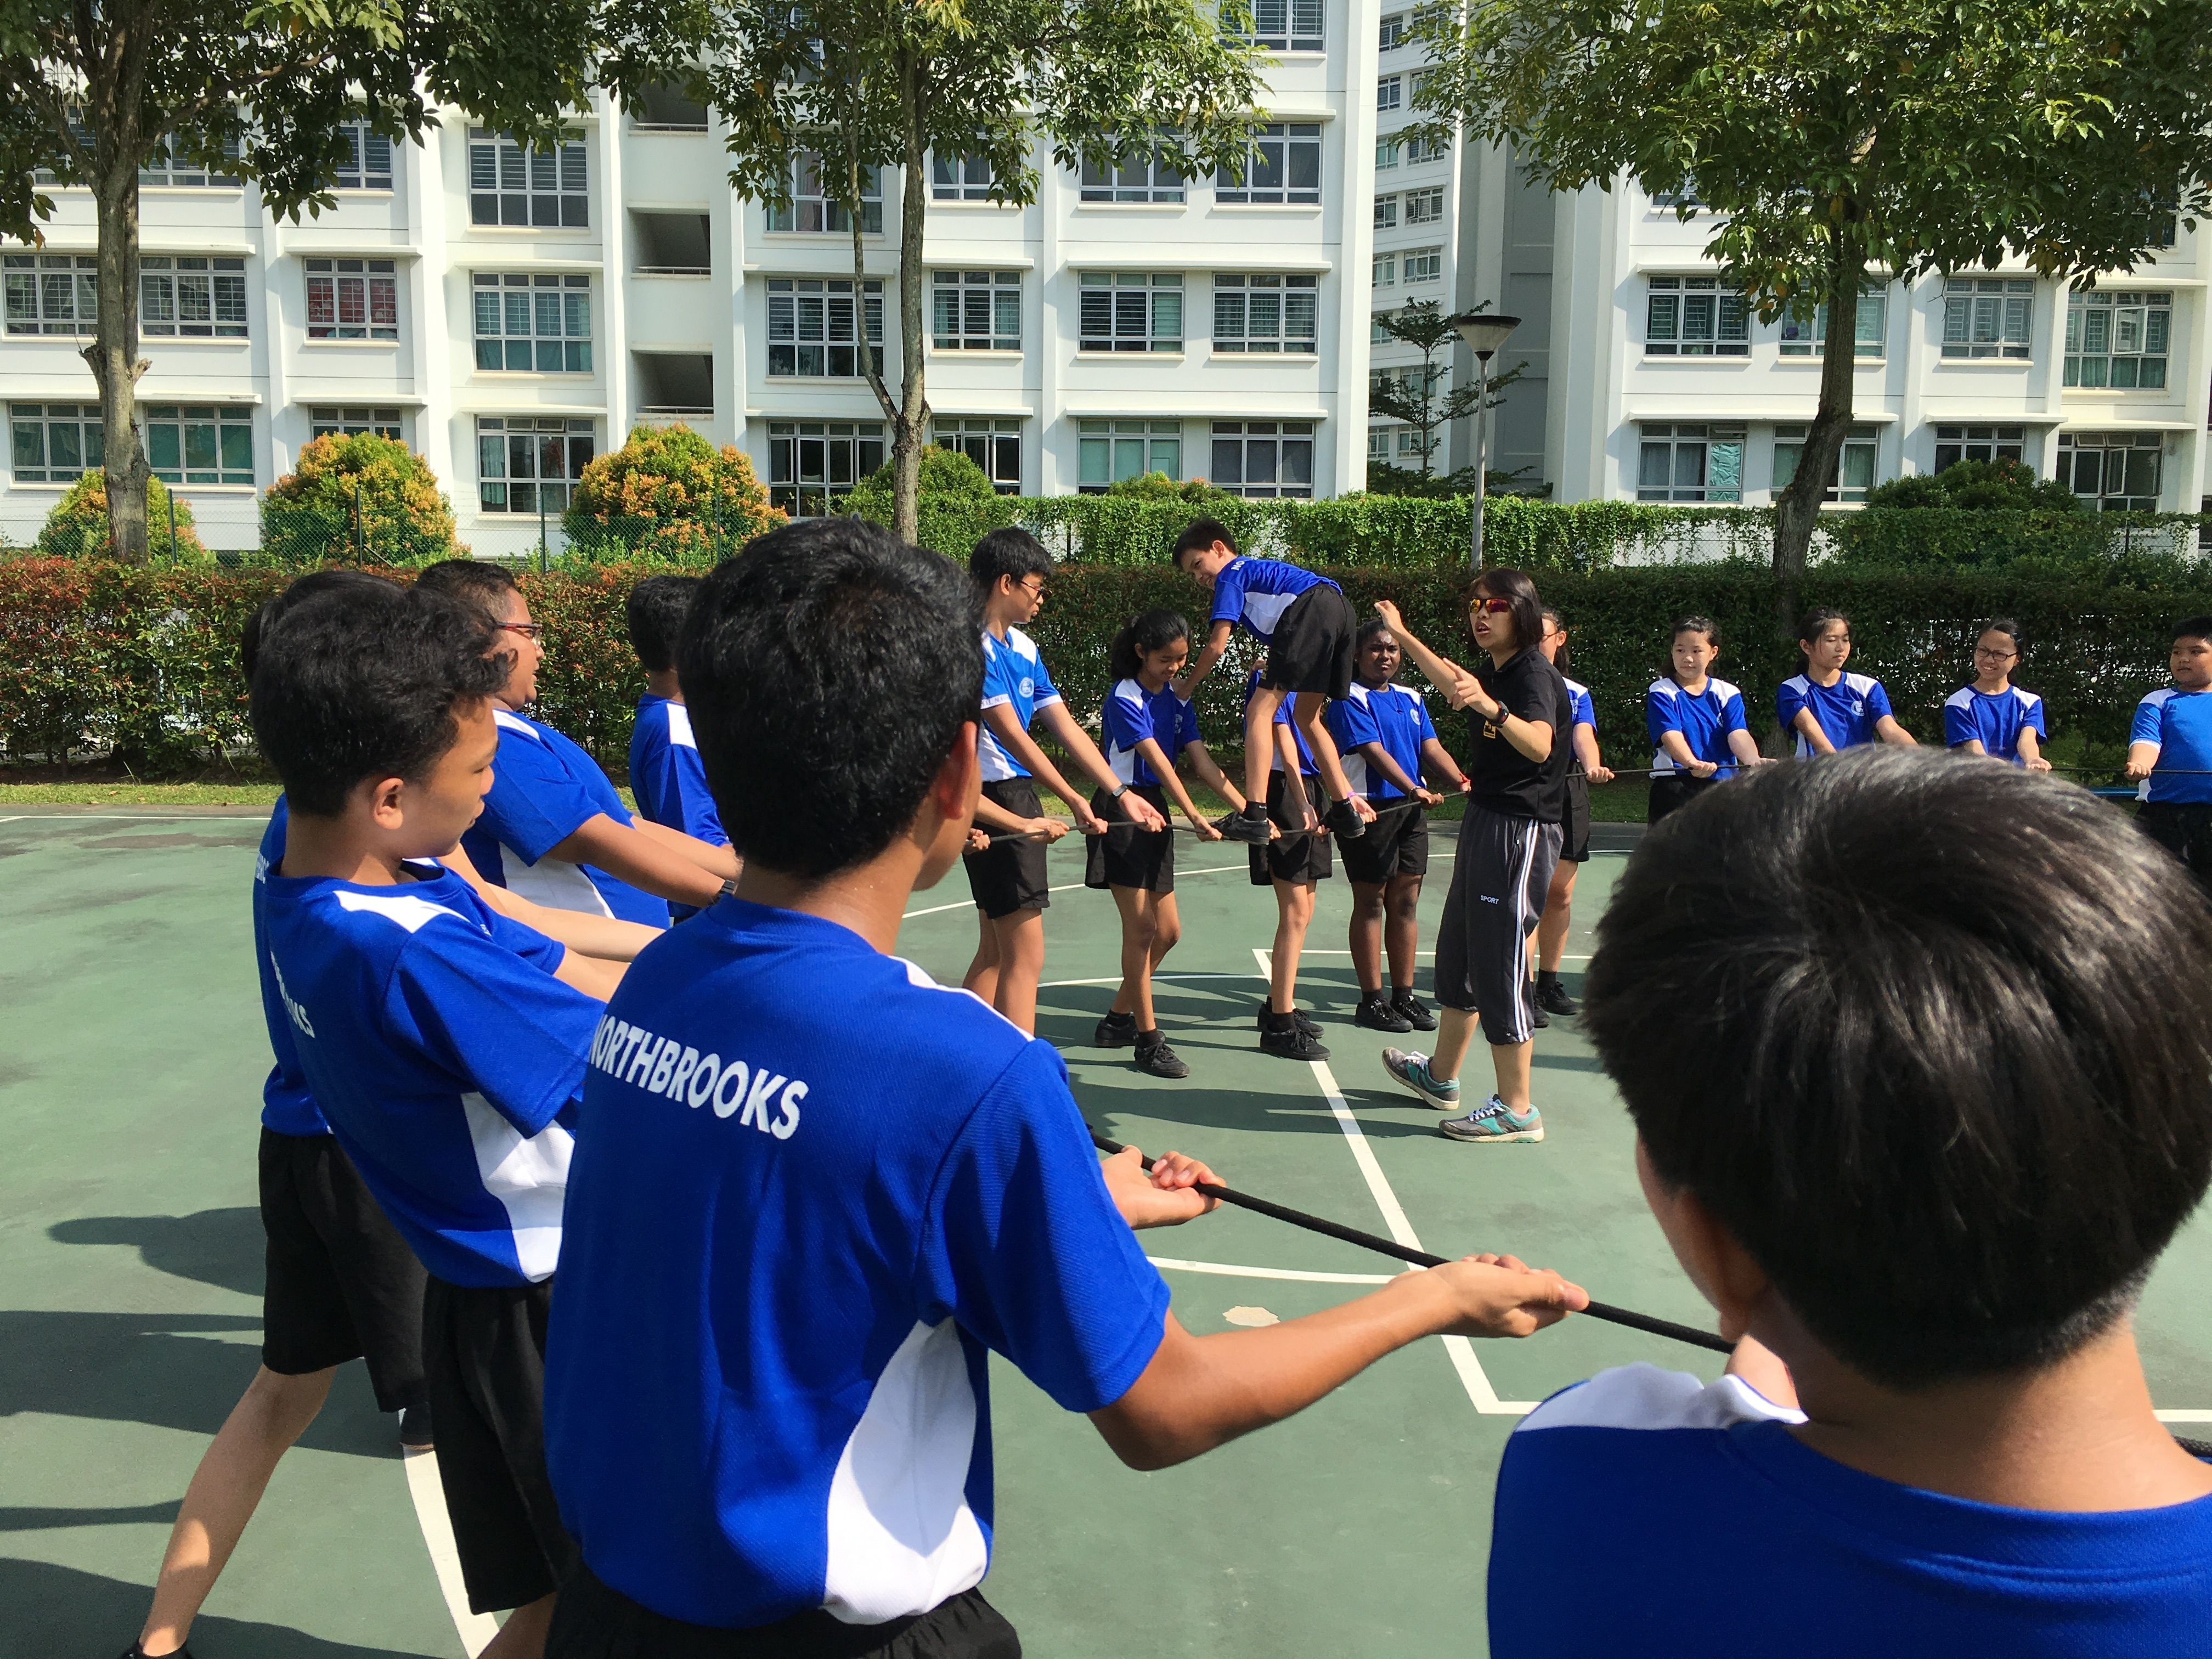 By the power of teamwork, Sec 1s learn to keep their friend up in the air.JPG